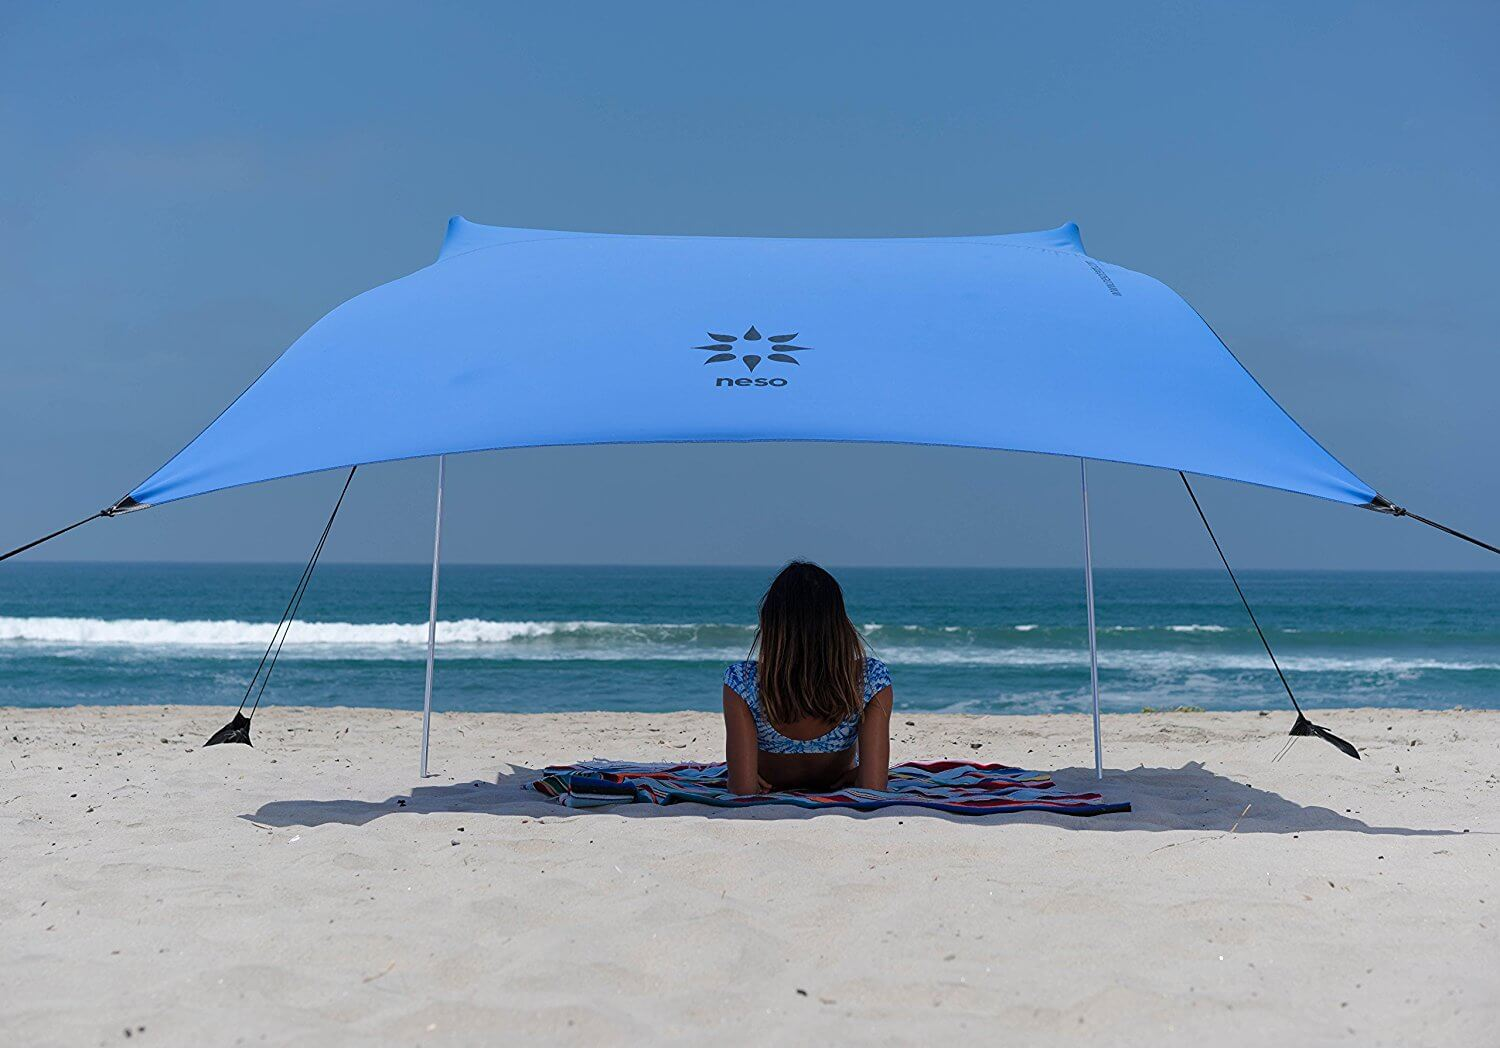 Neso Tents Beach Tent with Sand Anchor Portable Canopy SunShade - 7u0027 x 7 & Best Beach Canopy of 2018 - Reviews u0026 Buying Guide